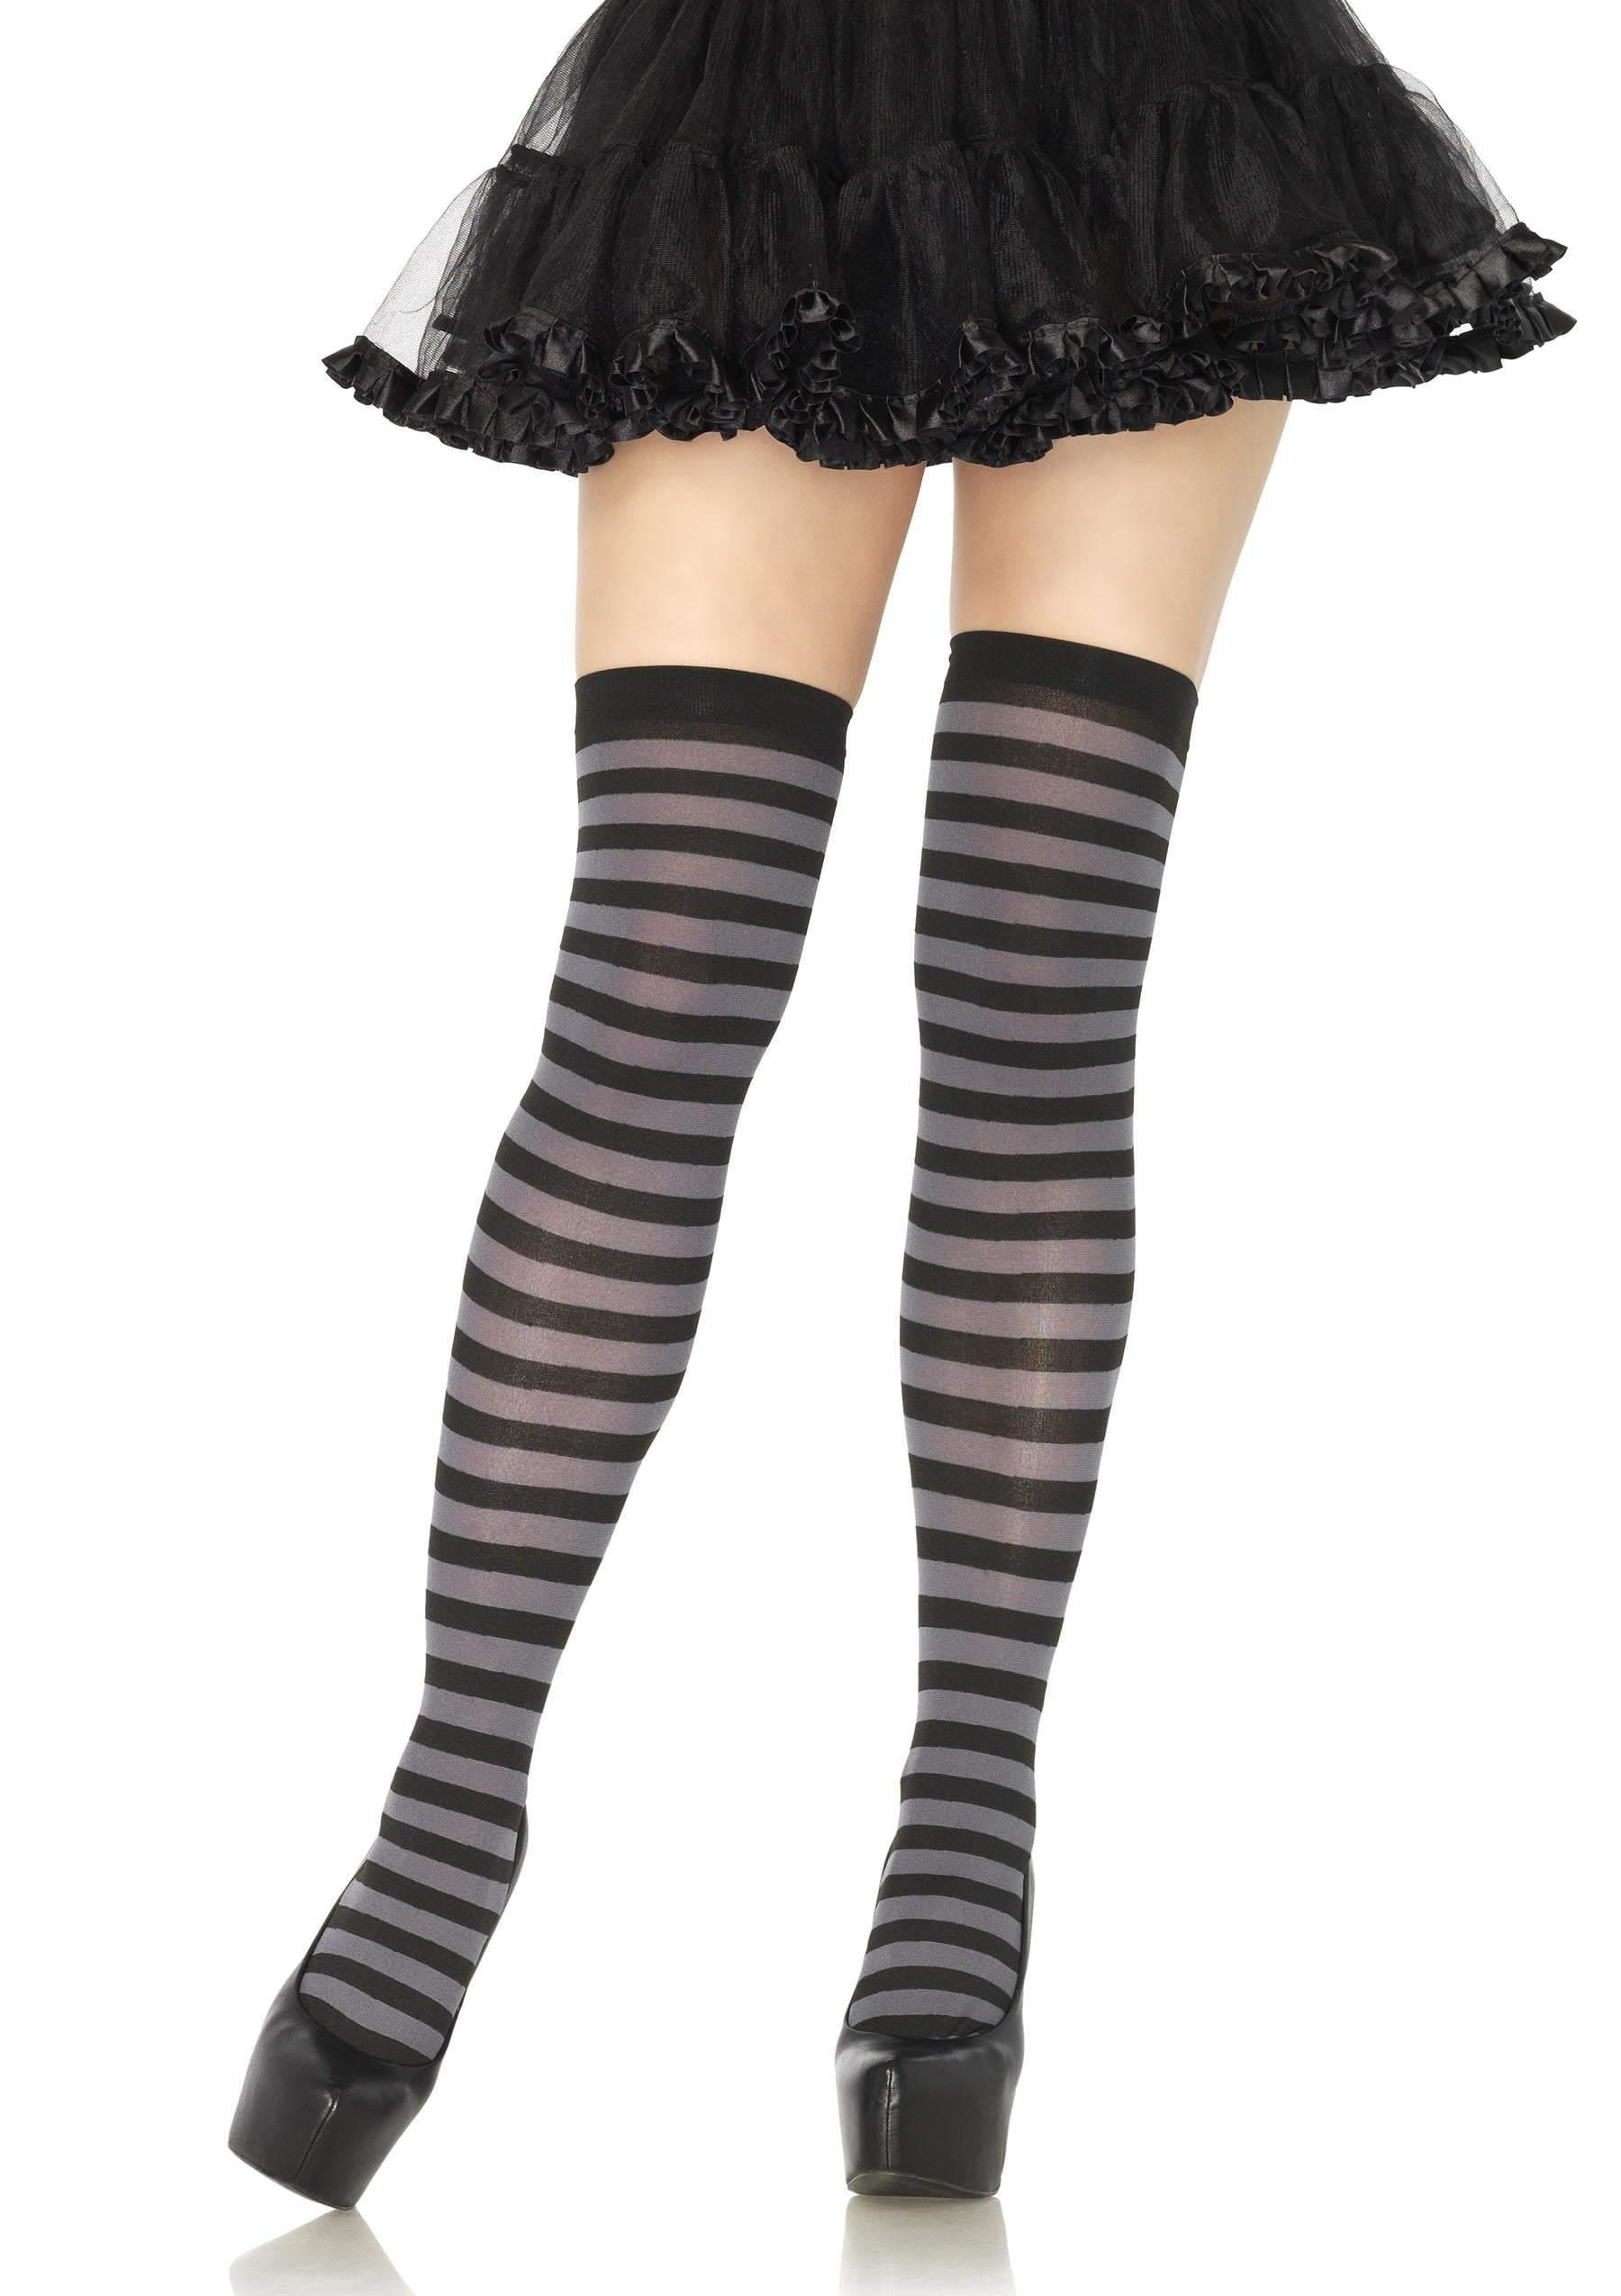 Leg Avenue Costume Accessories BLACK/GREY / O/S Striped Thigh High Stockings